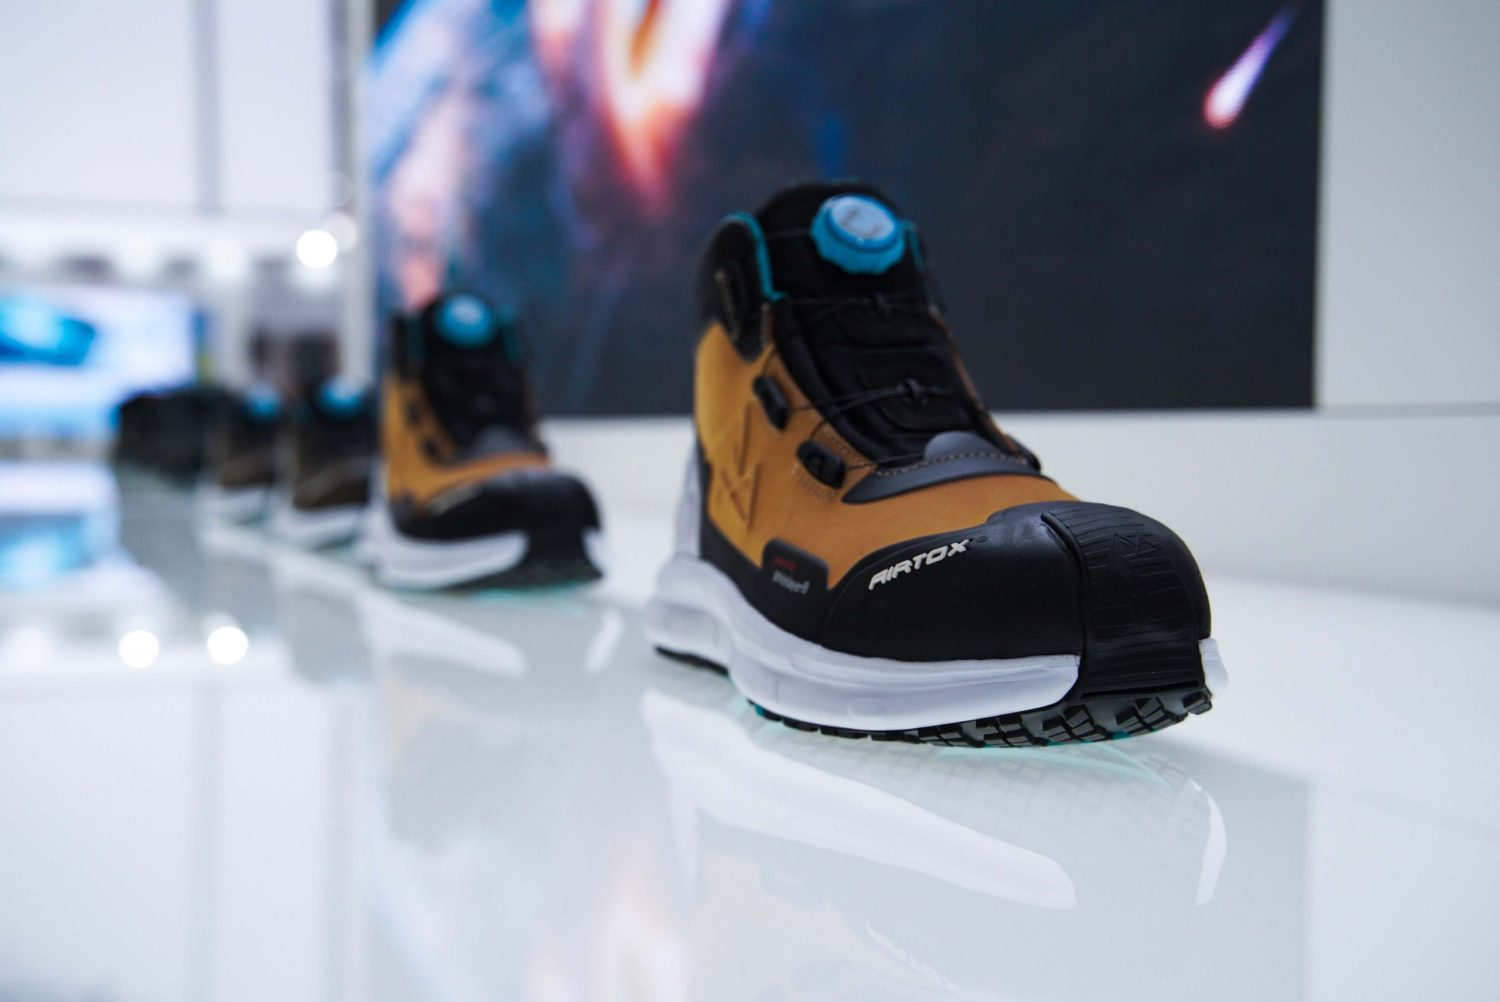 AIRTOX safety shoes different styles